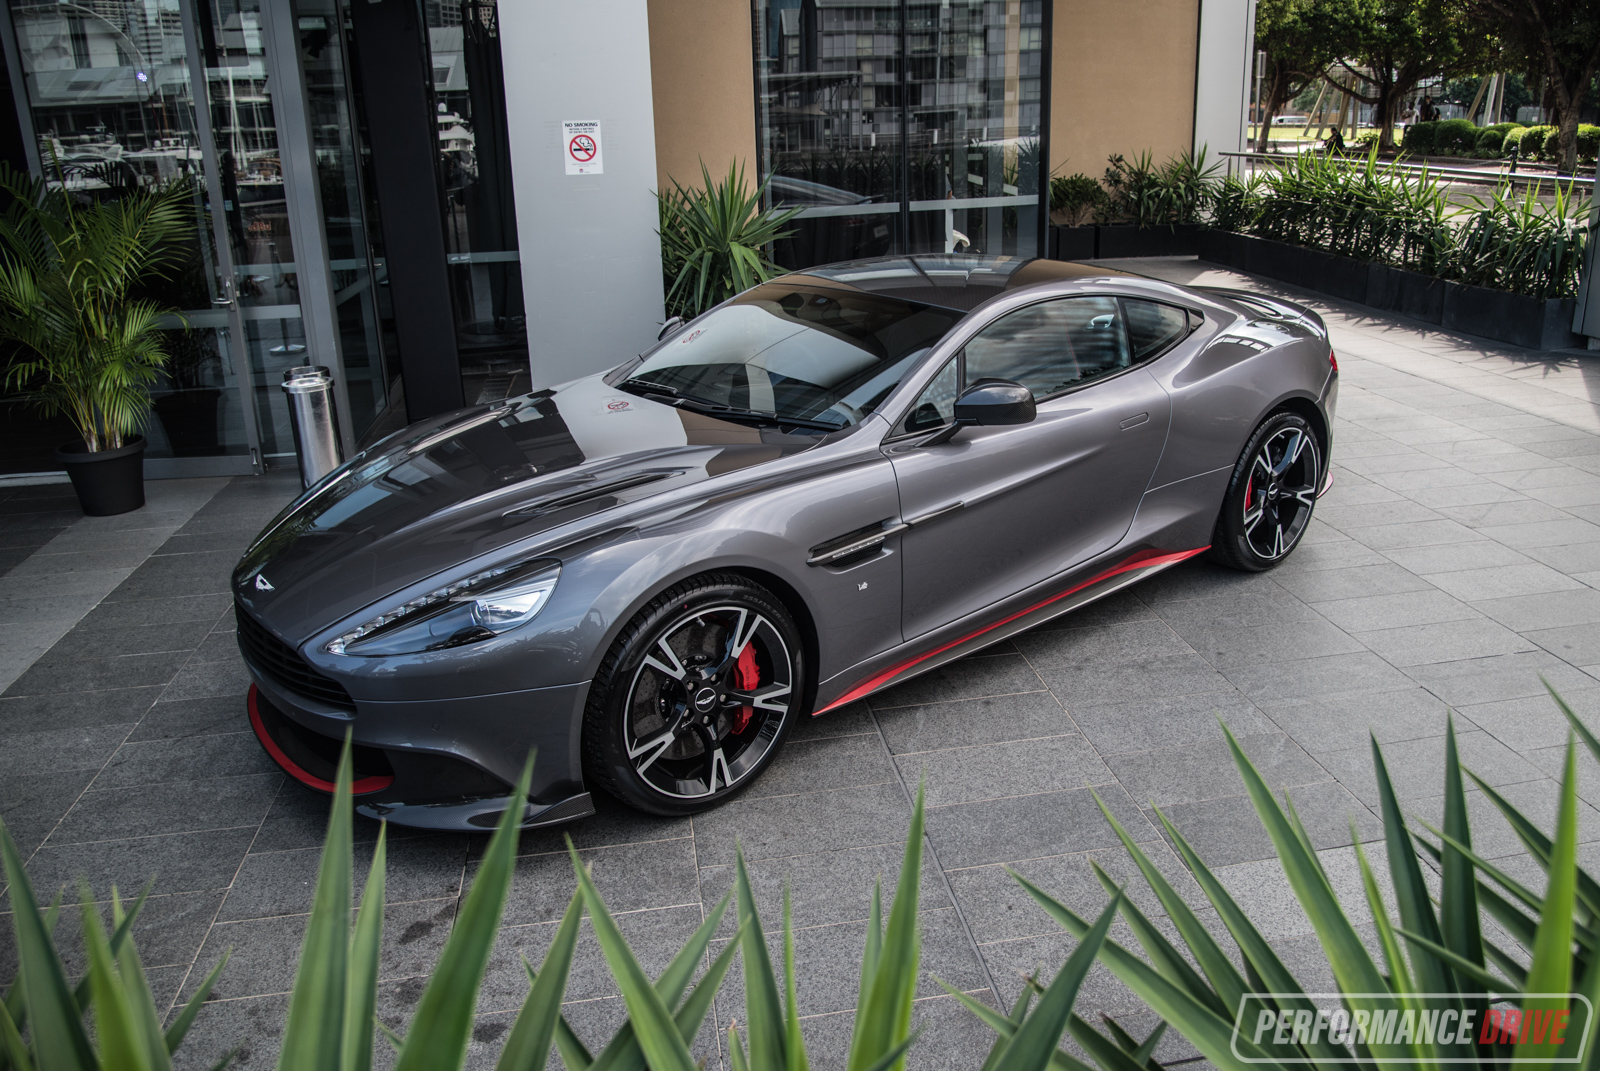 2017 aston martin vanquish s makes australian debut in sydney performancedrive. Black Bedroom Furniture Sets. Home Design Ideas